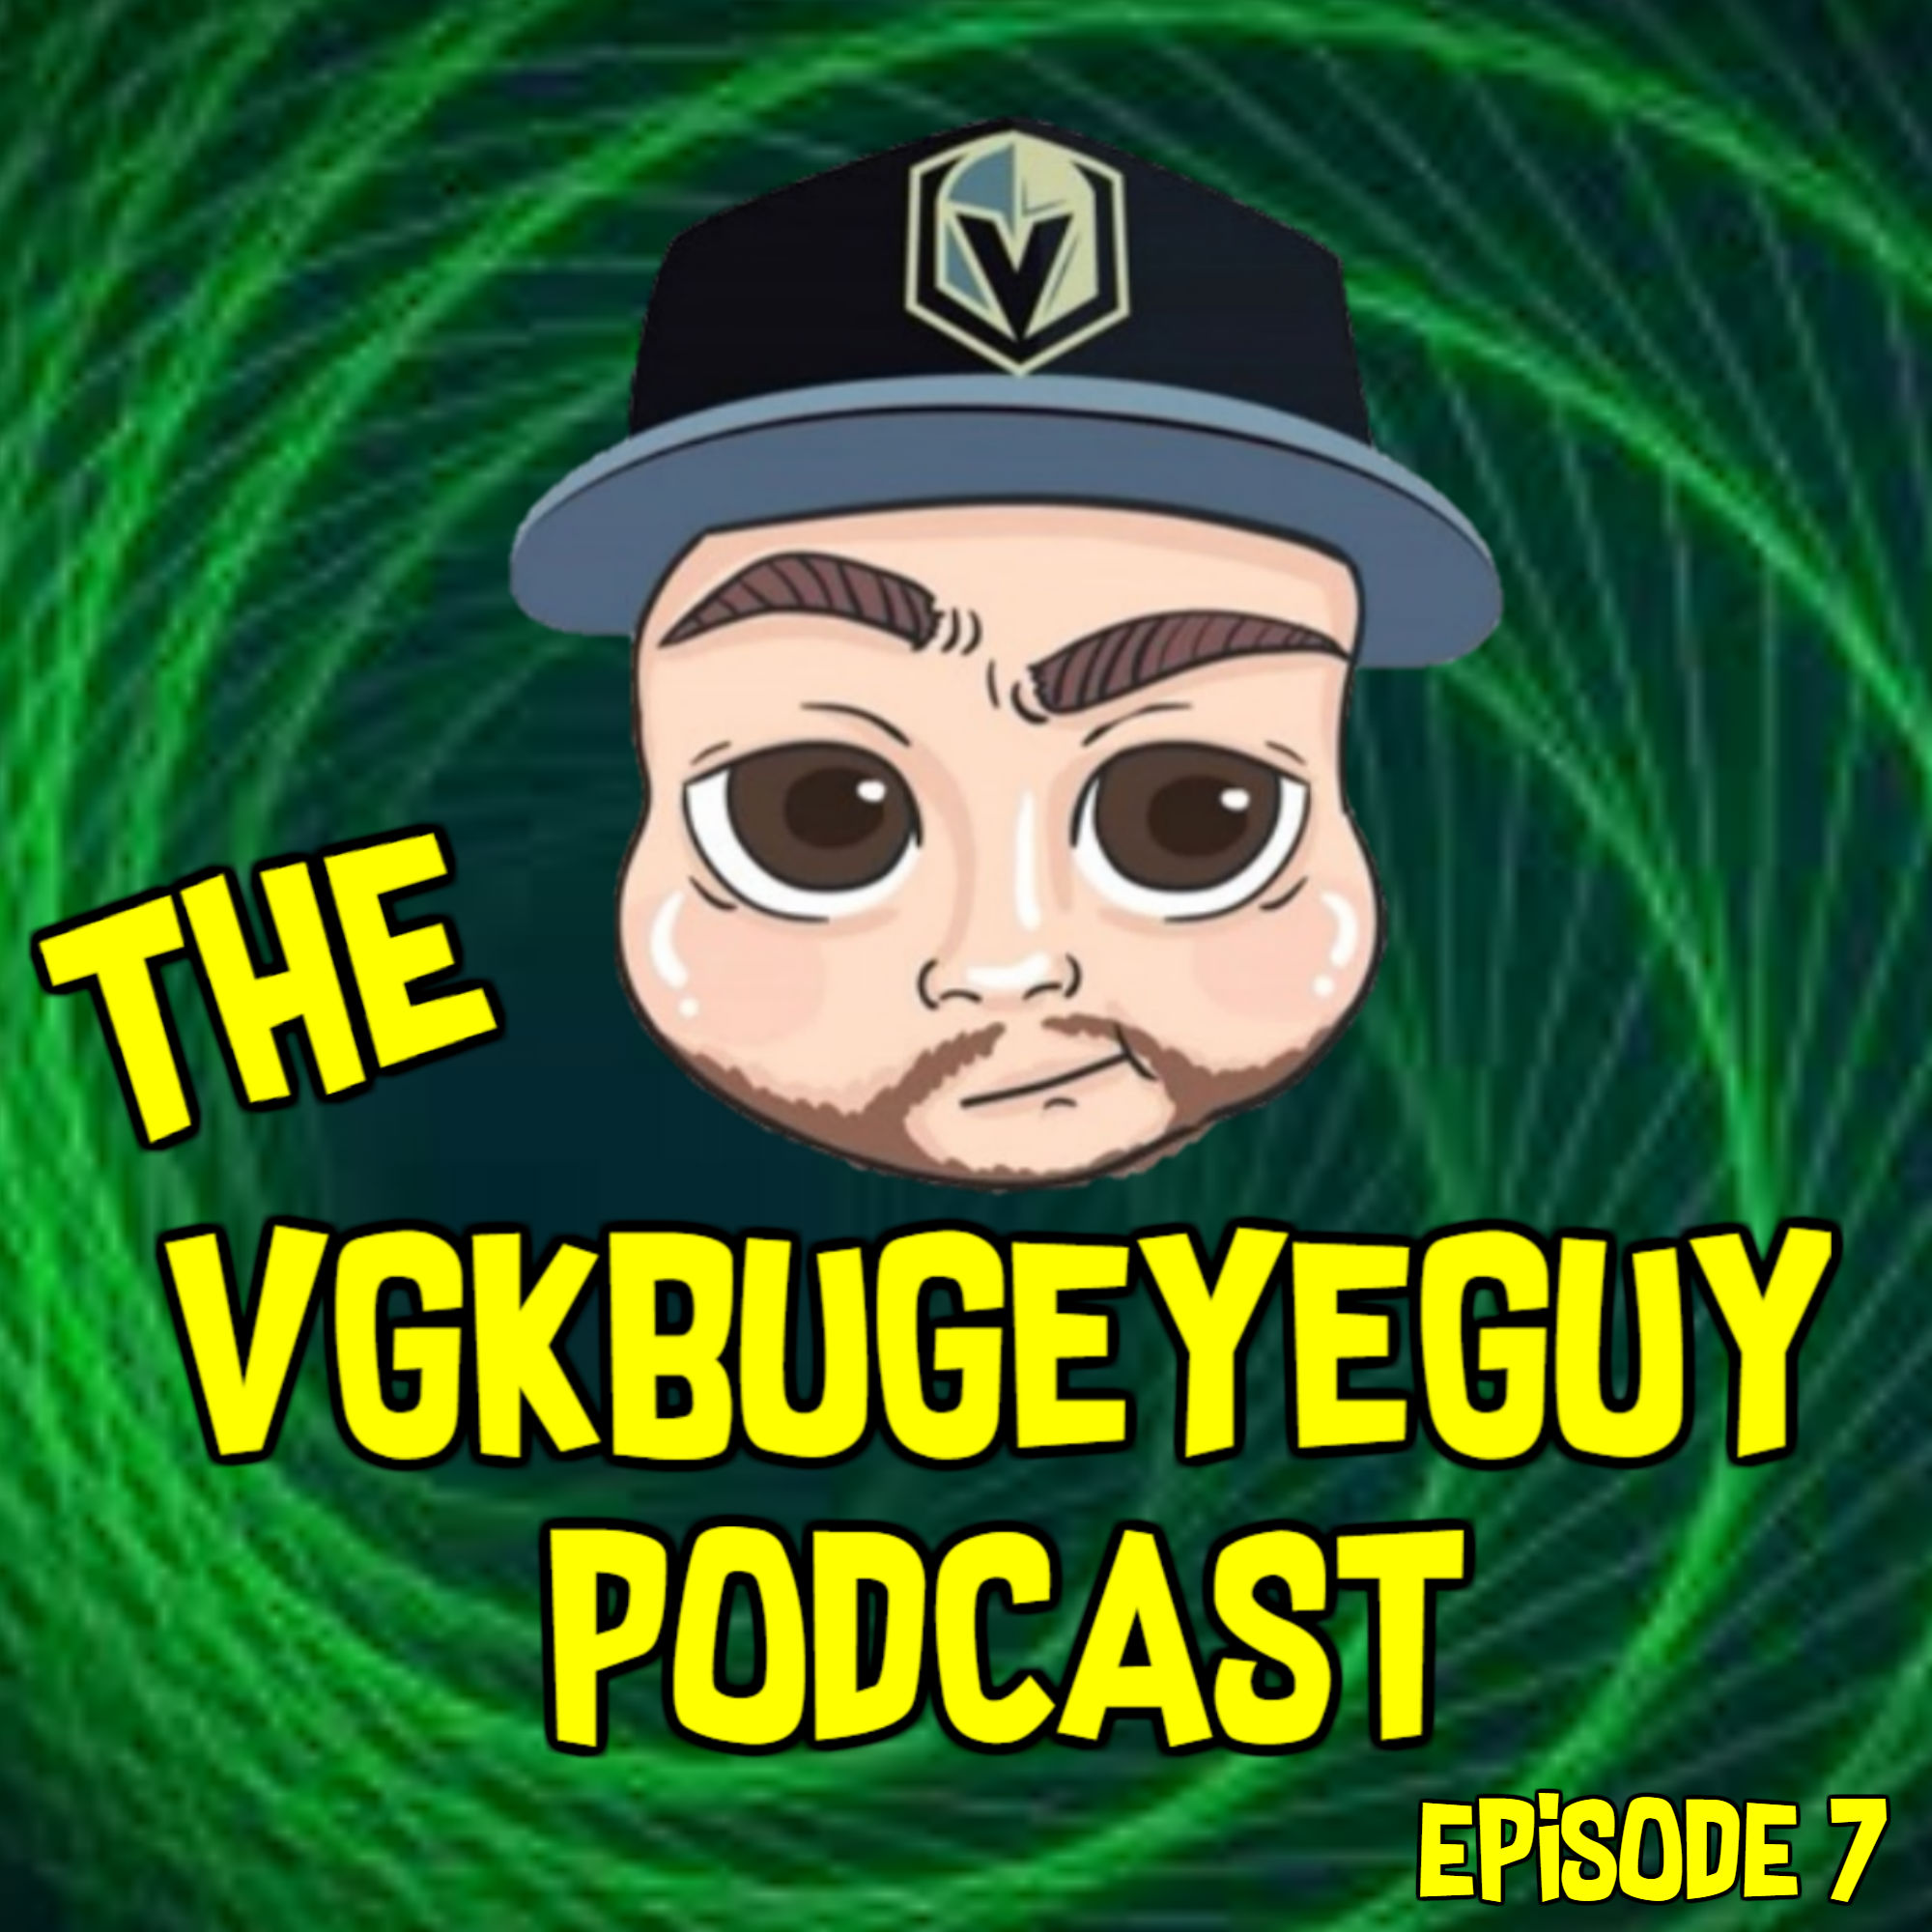 The VGKbugeyeGuy Podcast Episode 7